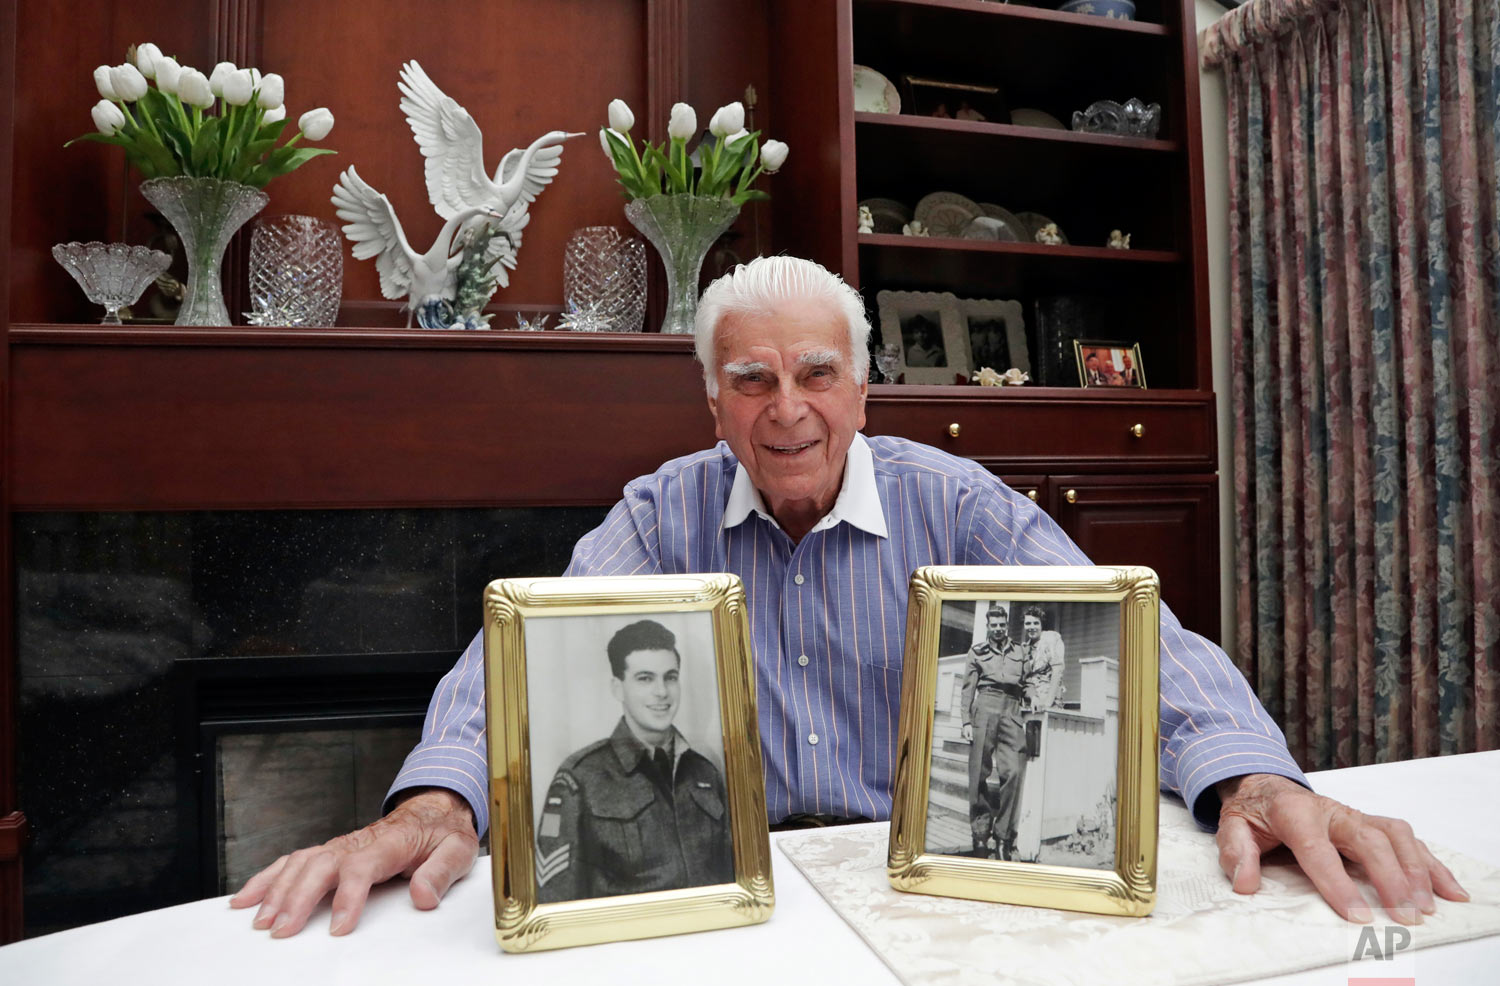 In this photo taken May 20, 2019, veteran Norman Harold Kirby sits with a photo of his mother, Katherine Louise Kirby, and himself, at 17, and a post-war portrait as he poses for a photo at his home in Lions Bay, Canada. The Canadian from British Columbia had joined the army when he was only 17 and was barely a 19-year-old private when he climbed into the landing craft that would take him to shore on June 6, 1944. (AP Photo/Elaine Thompson)